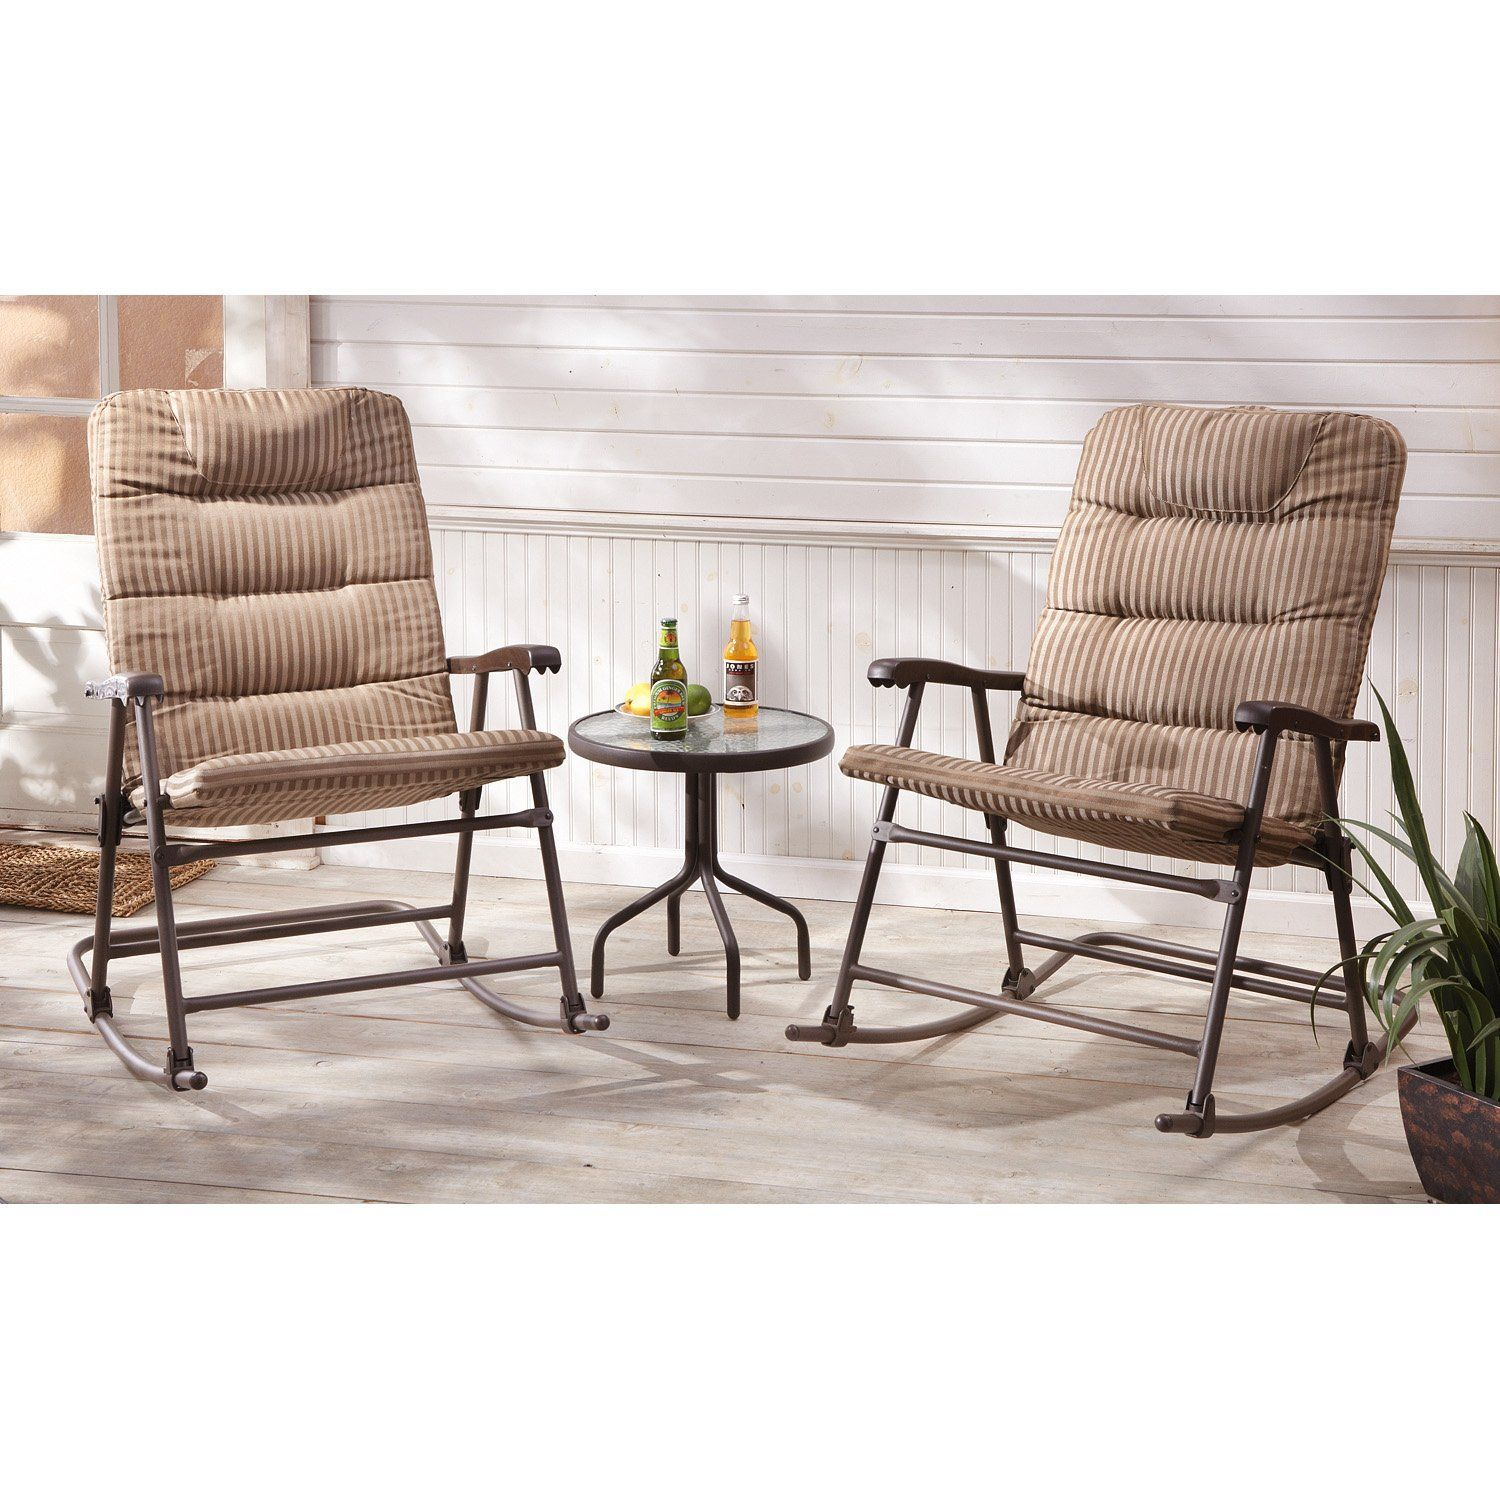 3Pc. CASTLECREEK Padded Rocker Set Outdoor rocking